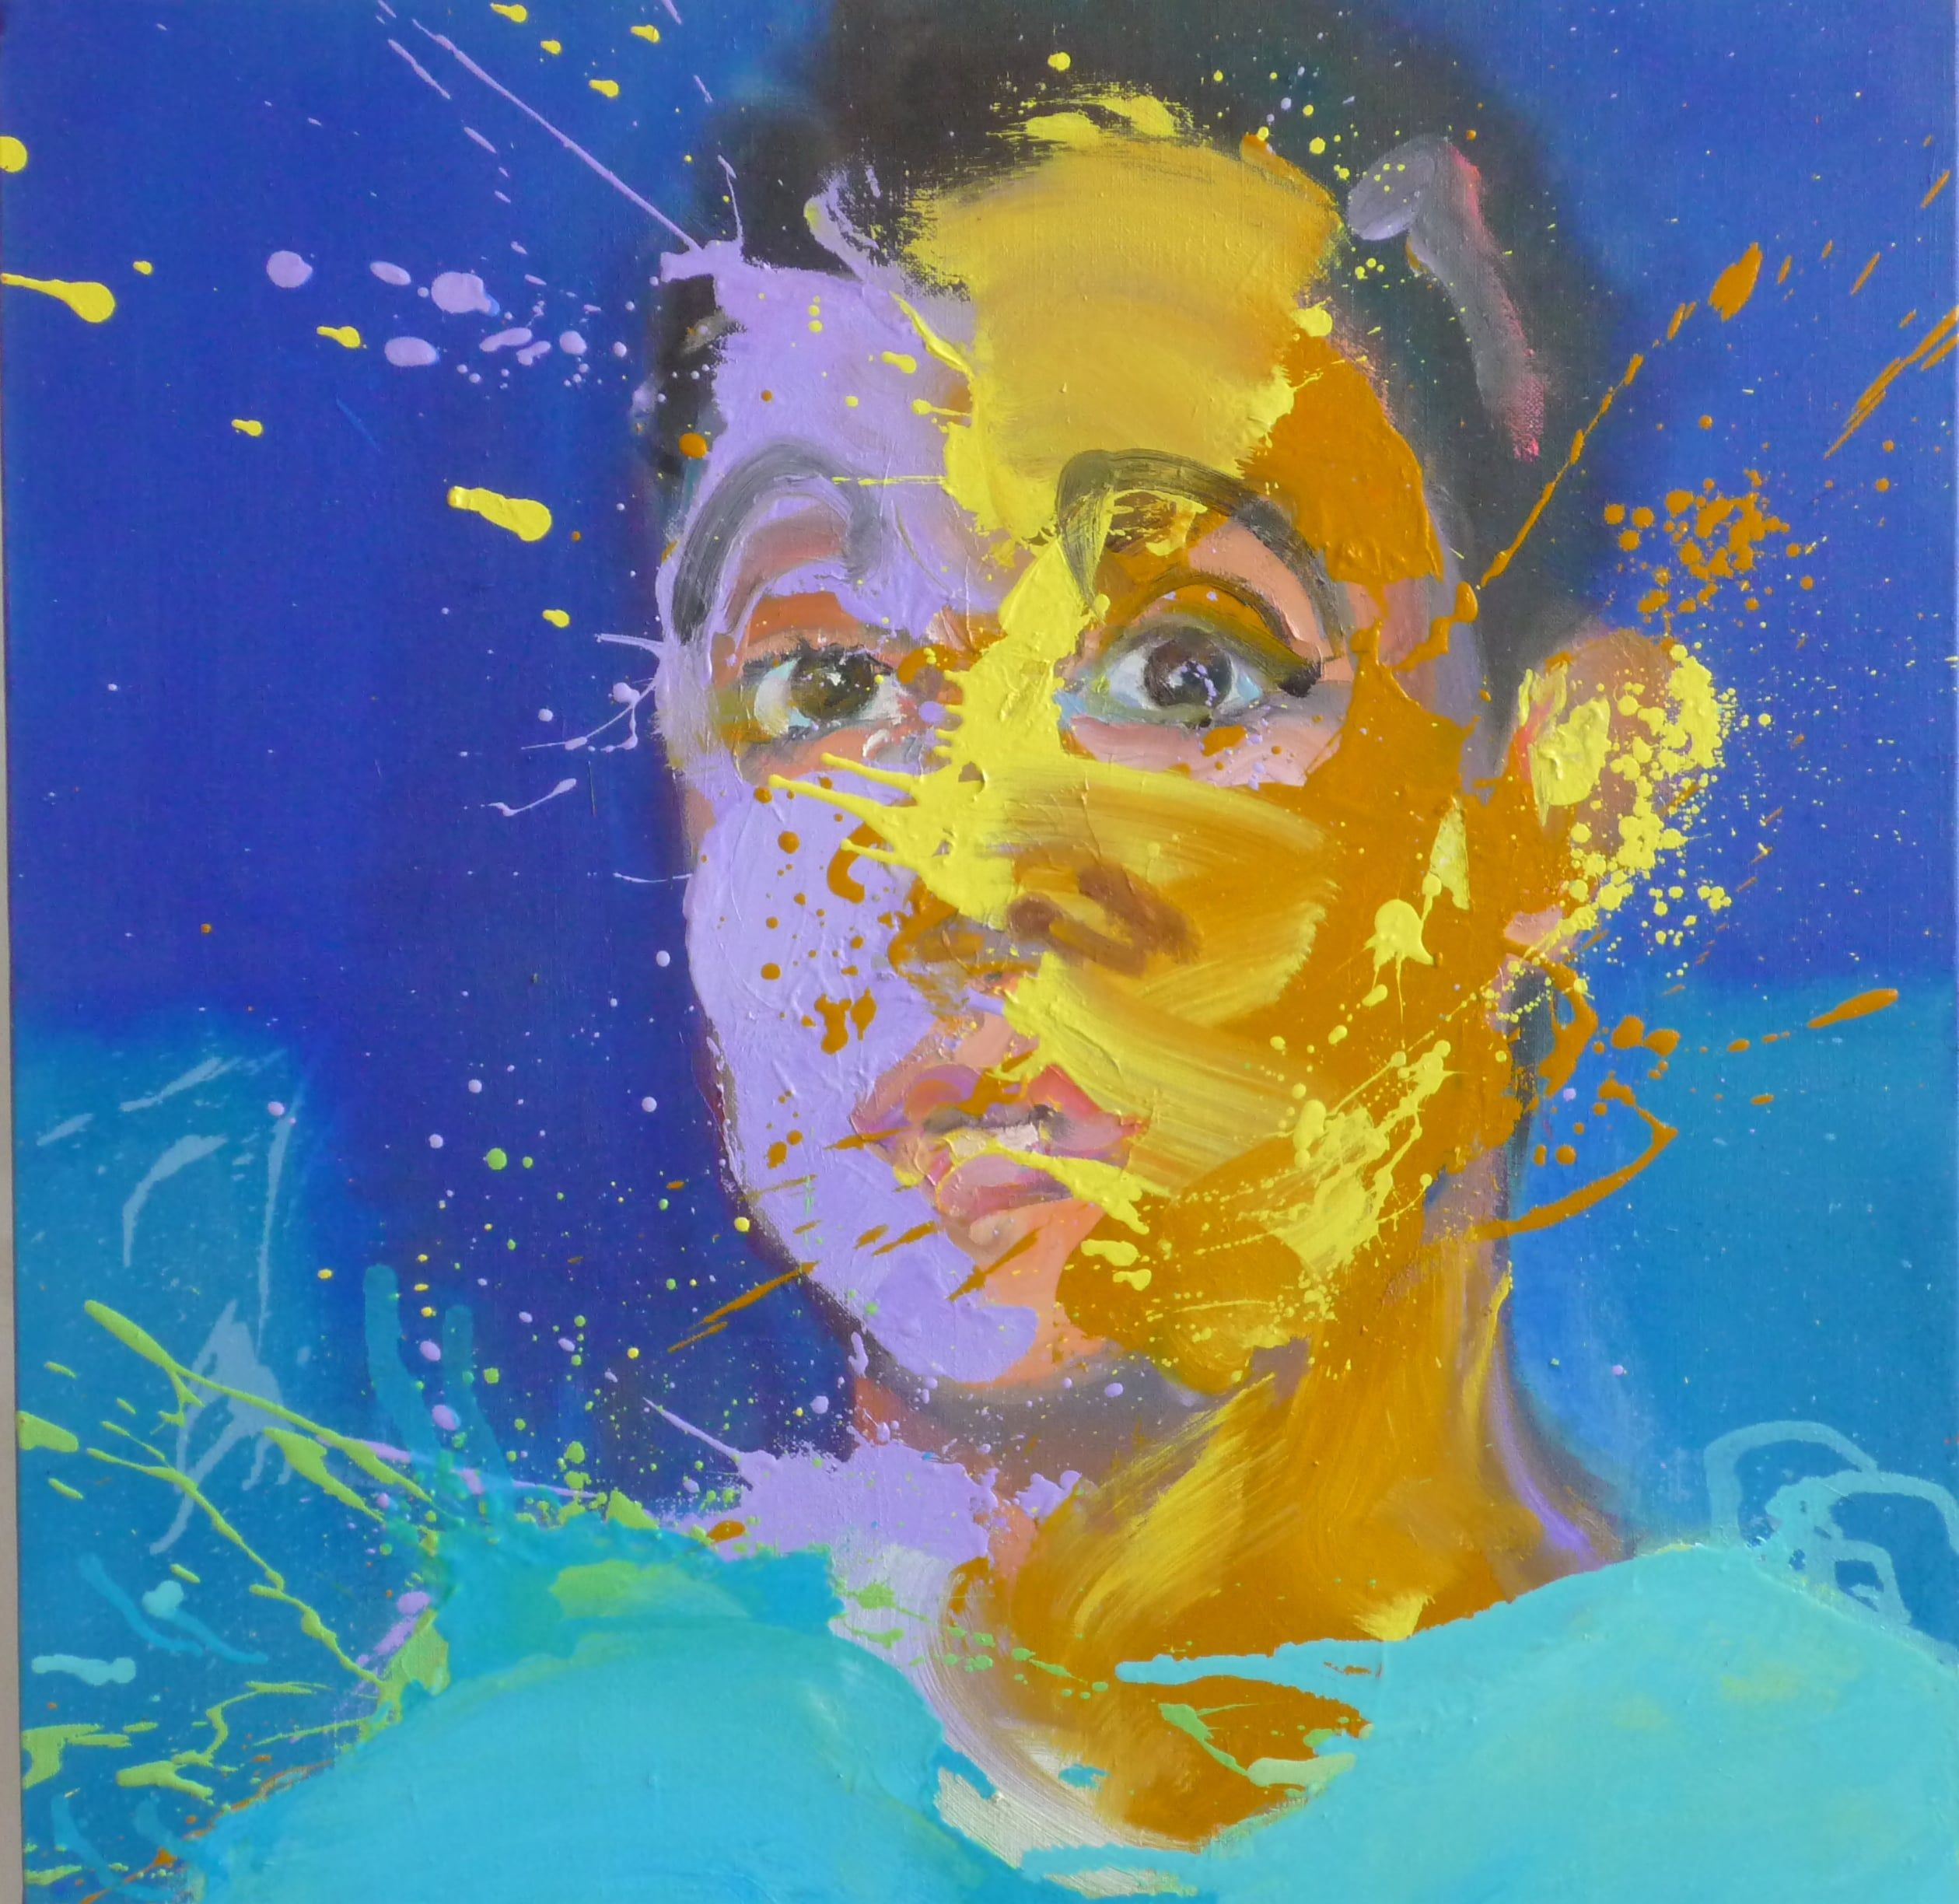 VALENT,Christophe Dupety,Contemporary painting